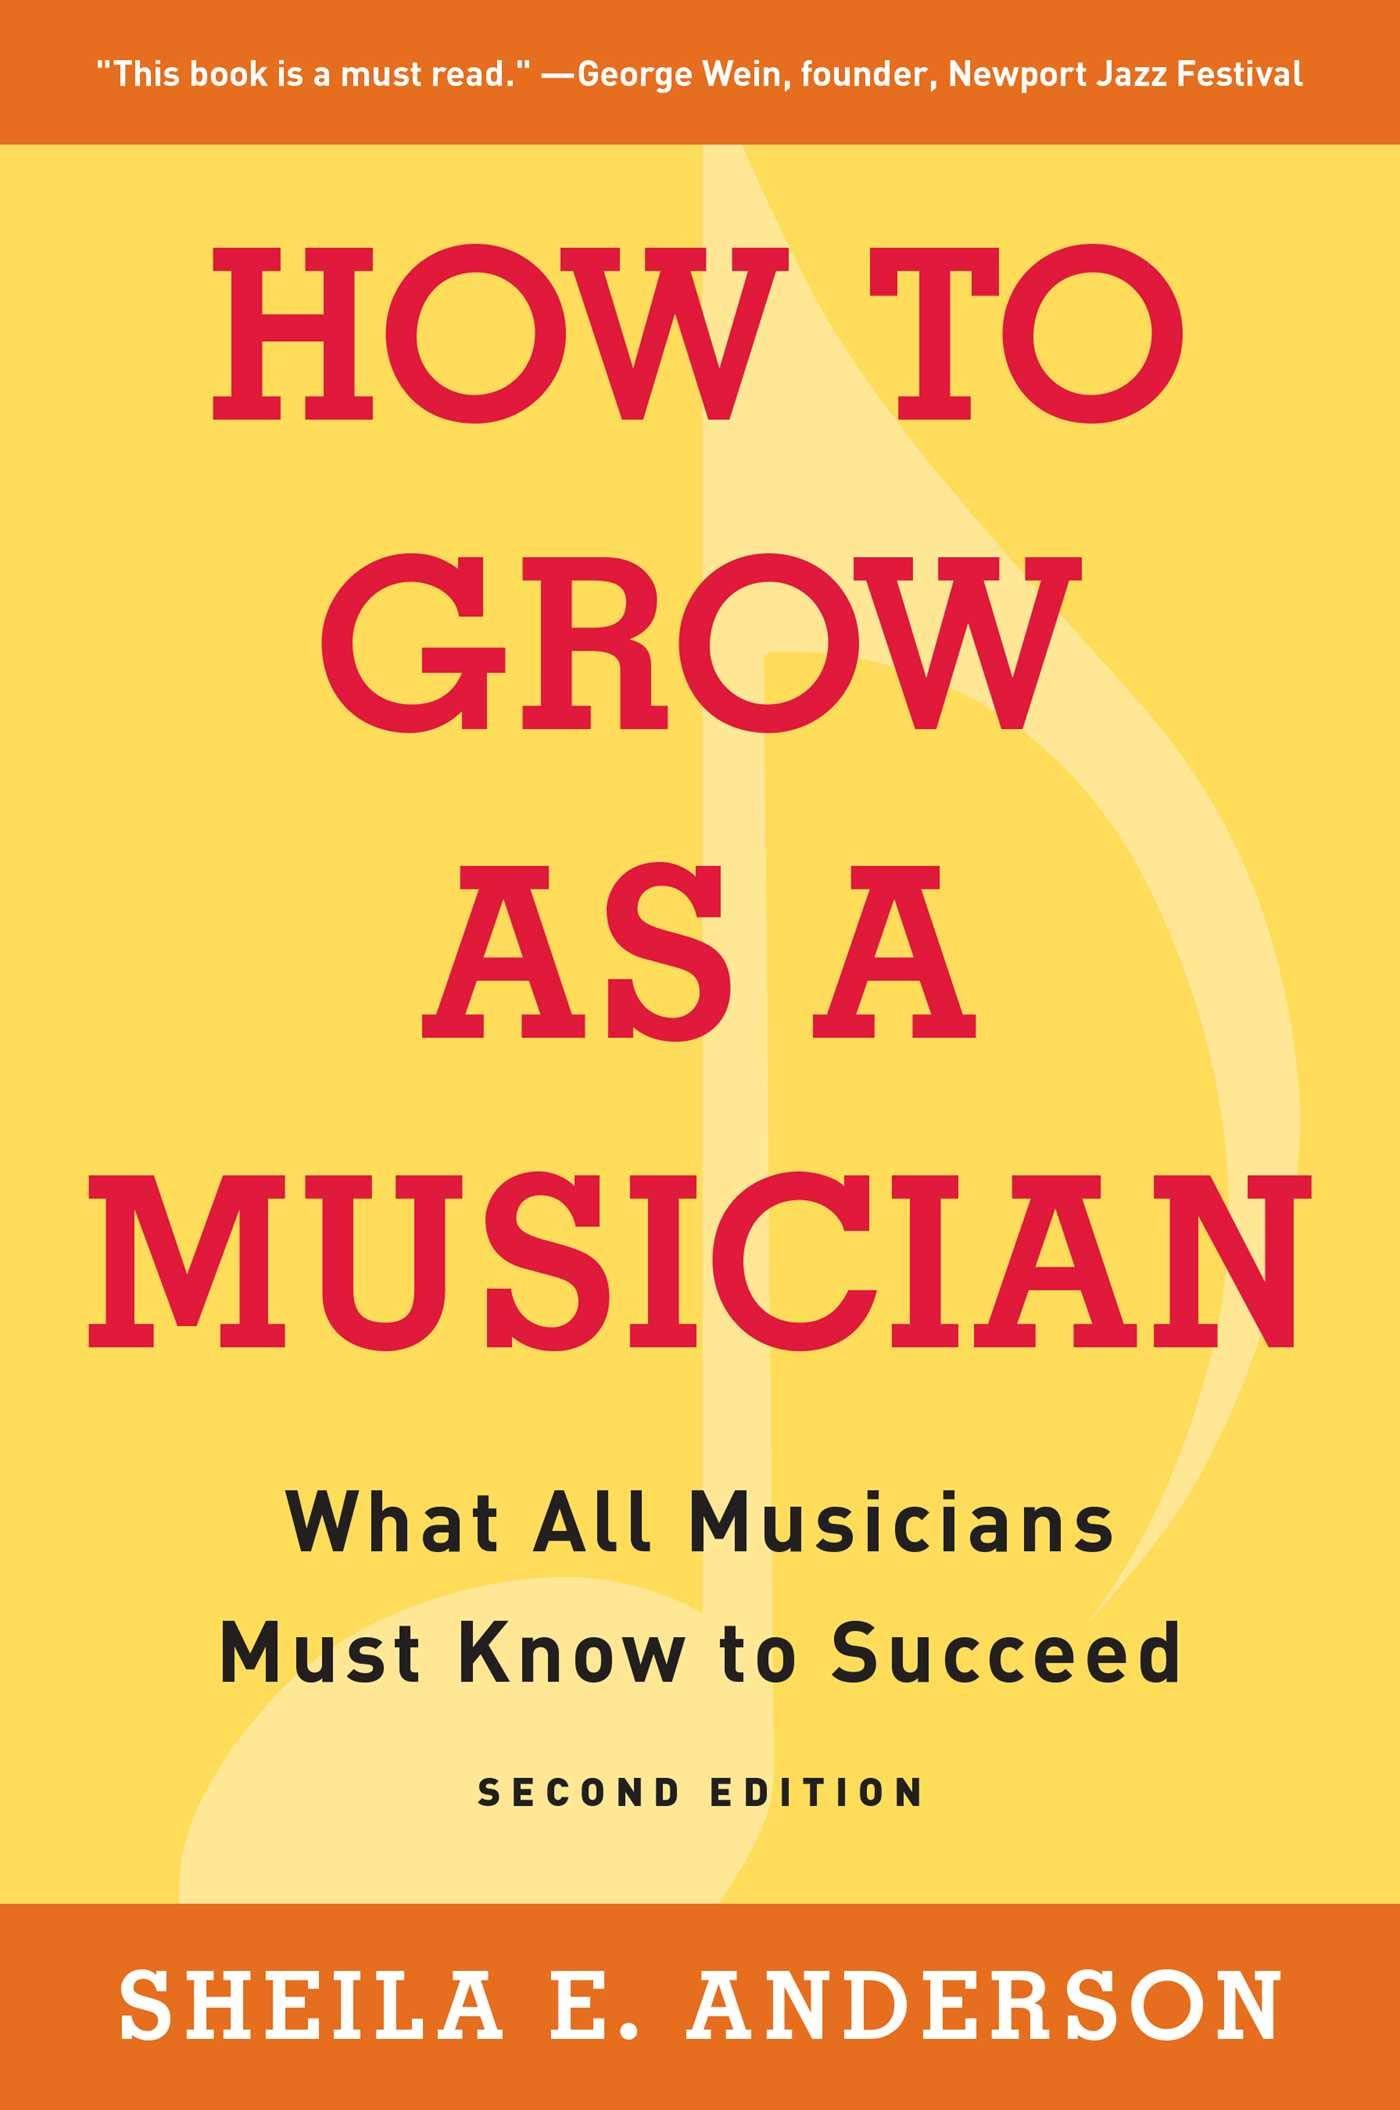 How to Grow as a Musician: What All Musicians Must Know to ...